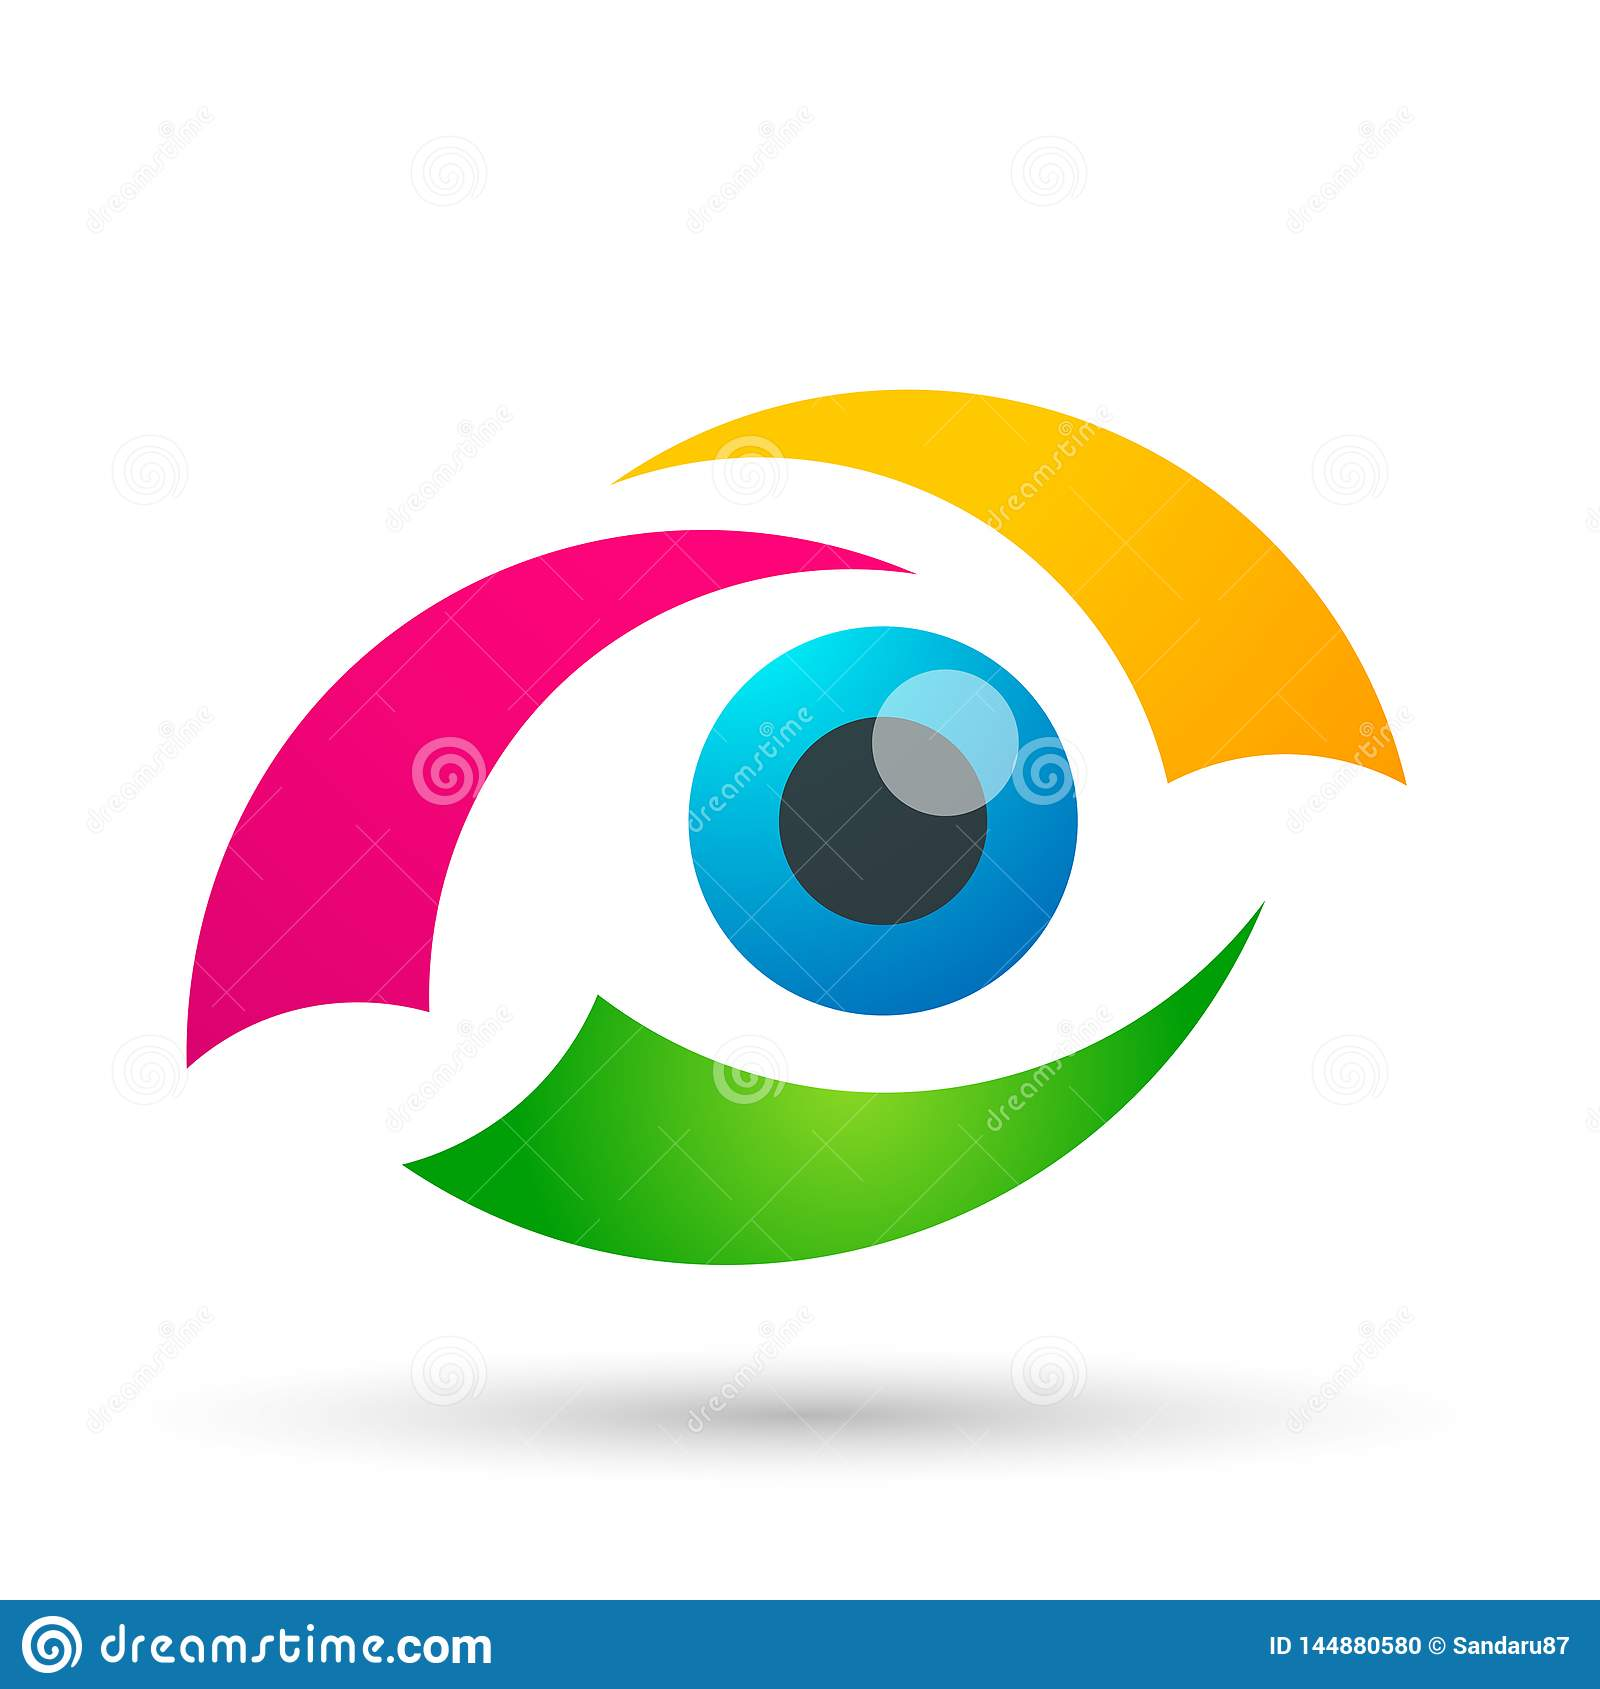 Medical eye care globe family health concept logo icon element sign on white background